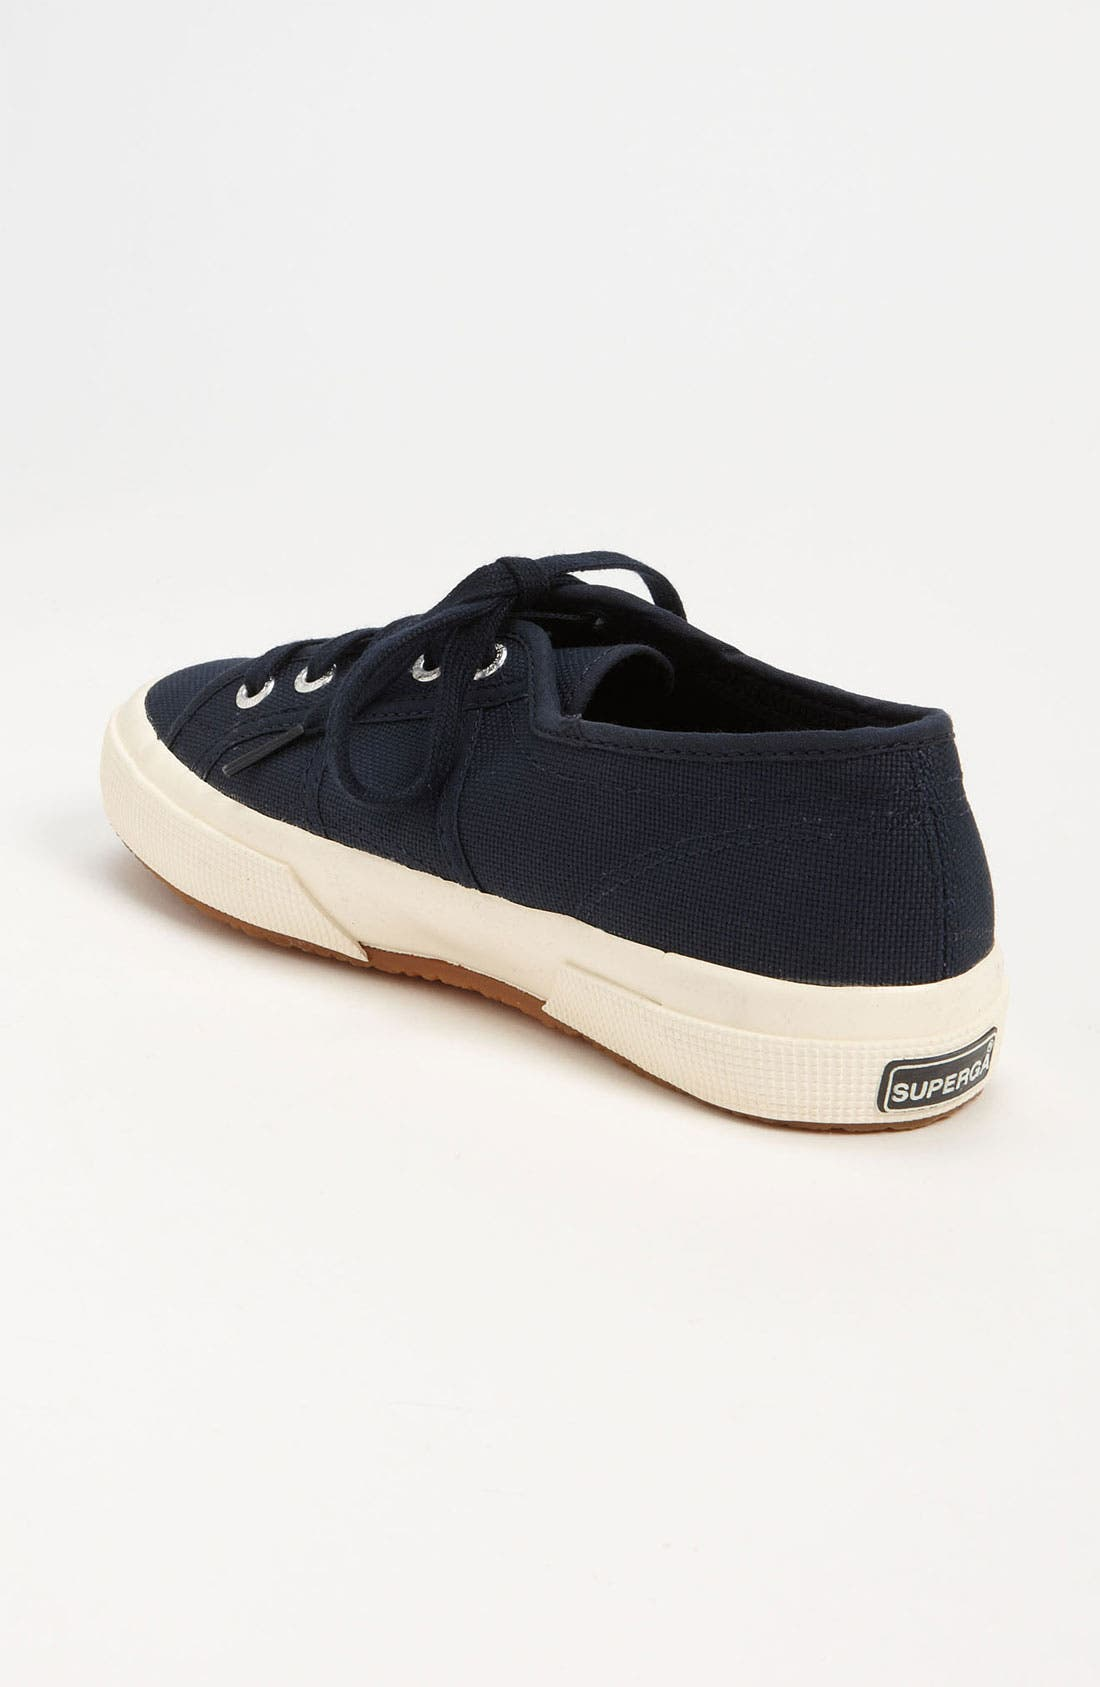 'Cotu' Sneaker,                             Alternate thumbnail 2, color,                             Navy Canvas